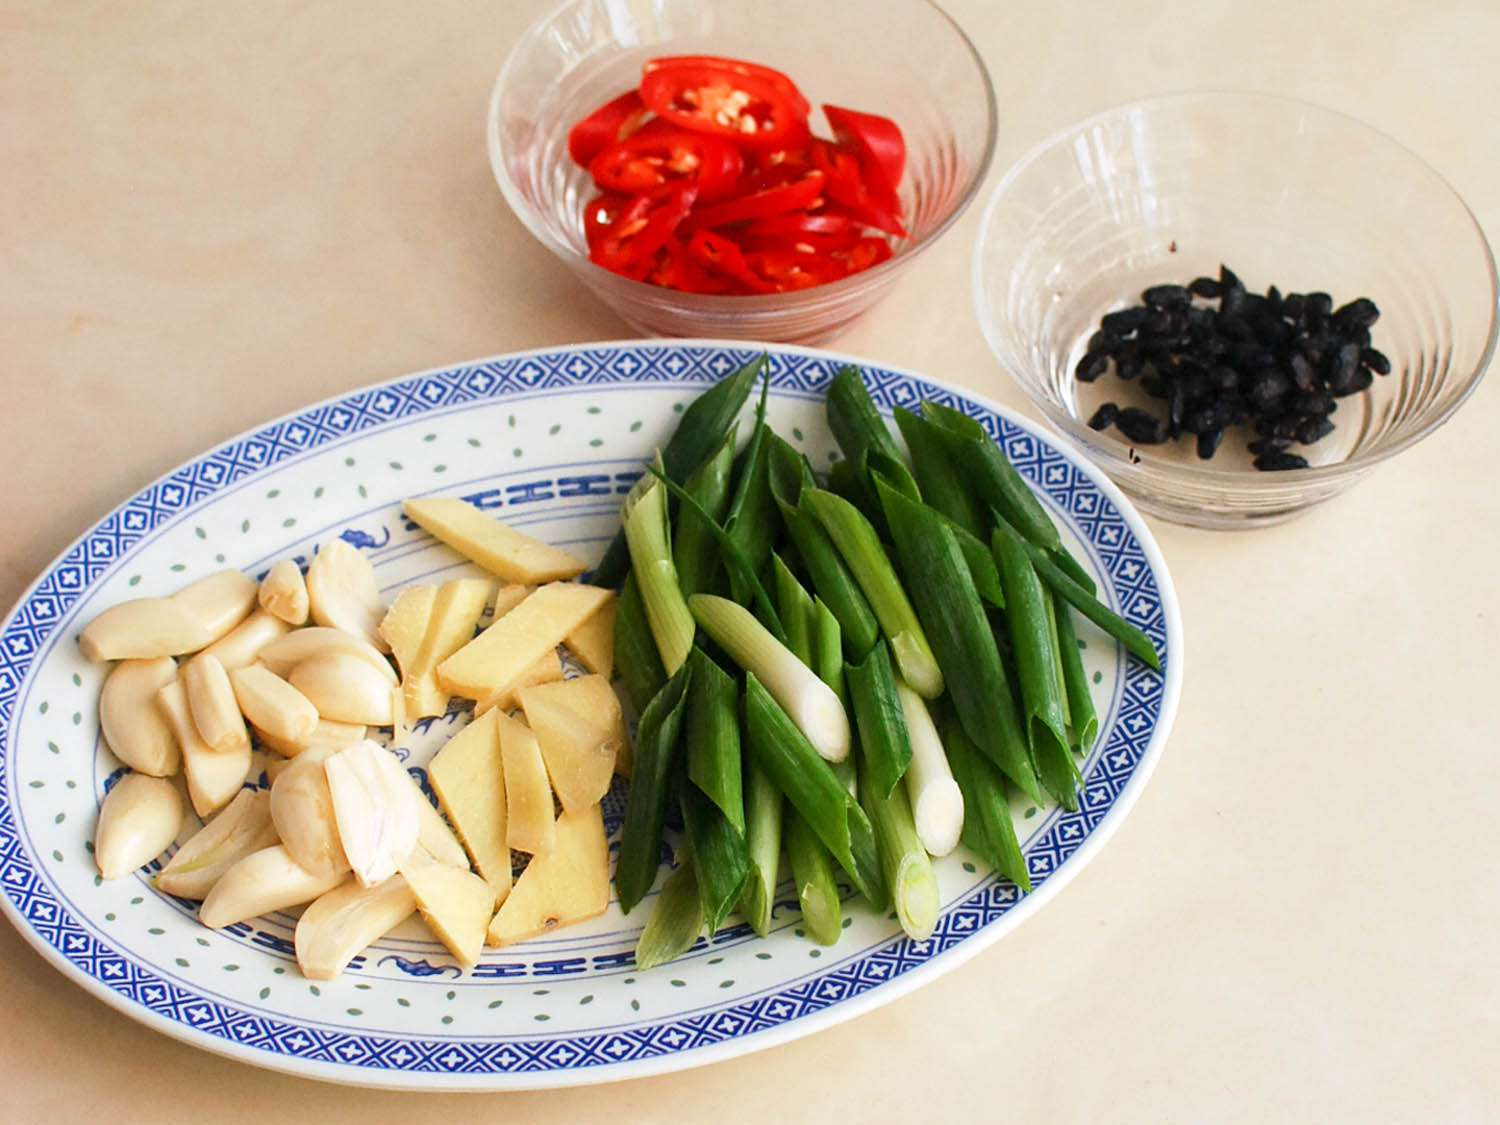 20140617-stir-fry-tripe-with-pickled-mustard-greens-and-fermented-black-beans-shao-zhong-1.jpg